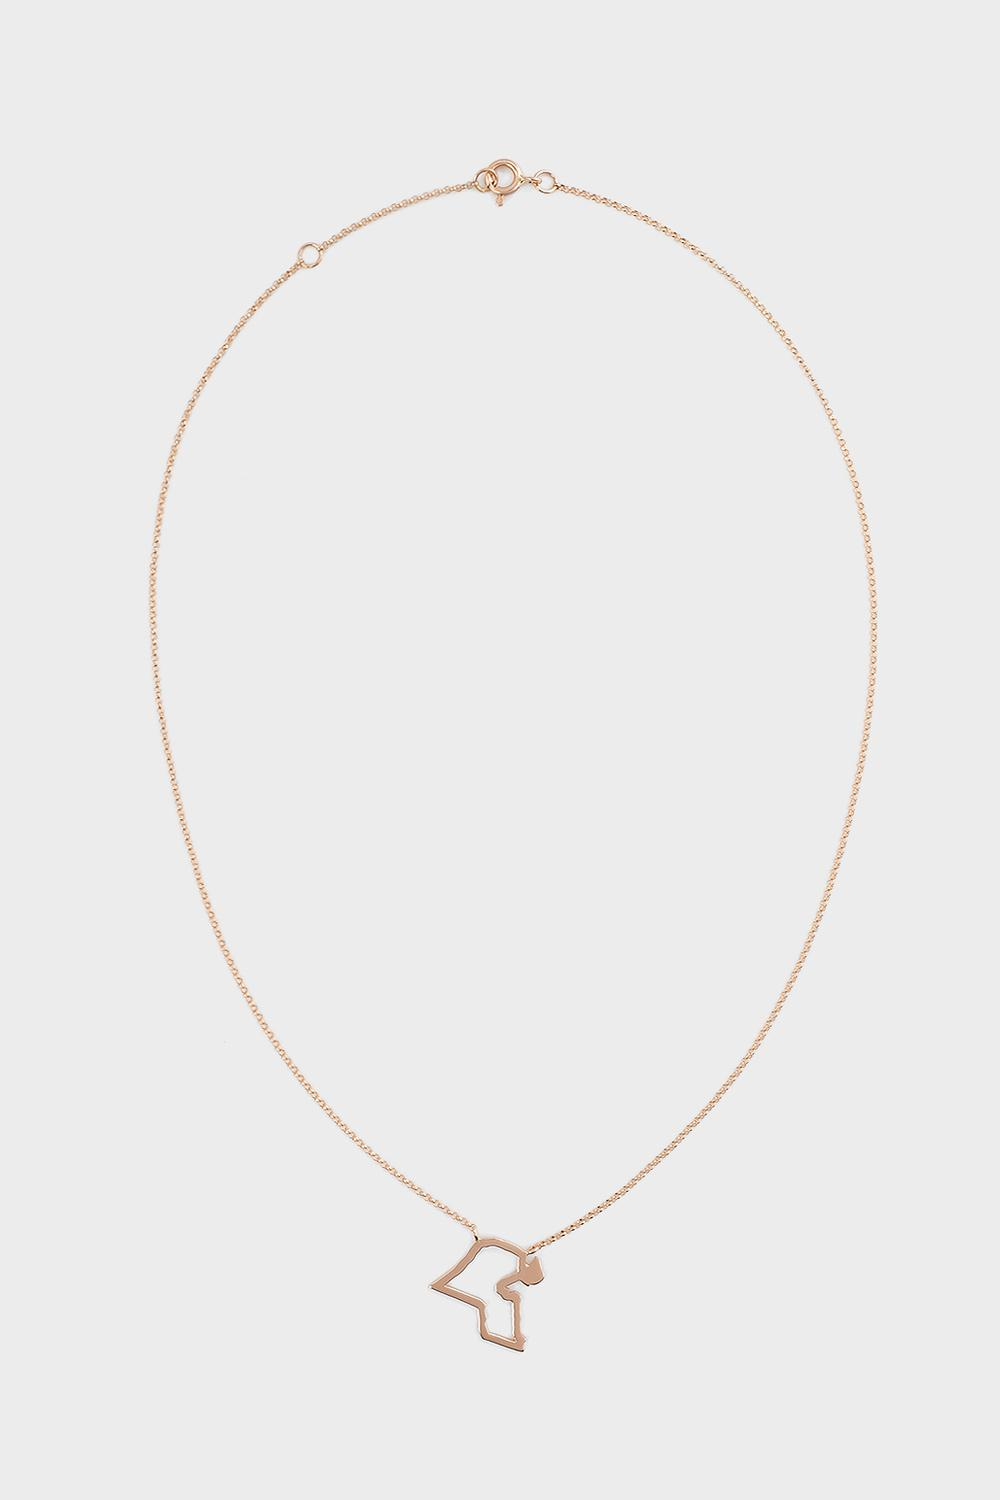 TIBA Kuwait Map Outline Necklace, Size Os, Women, R Gold